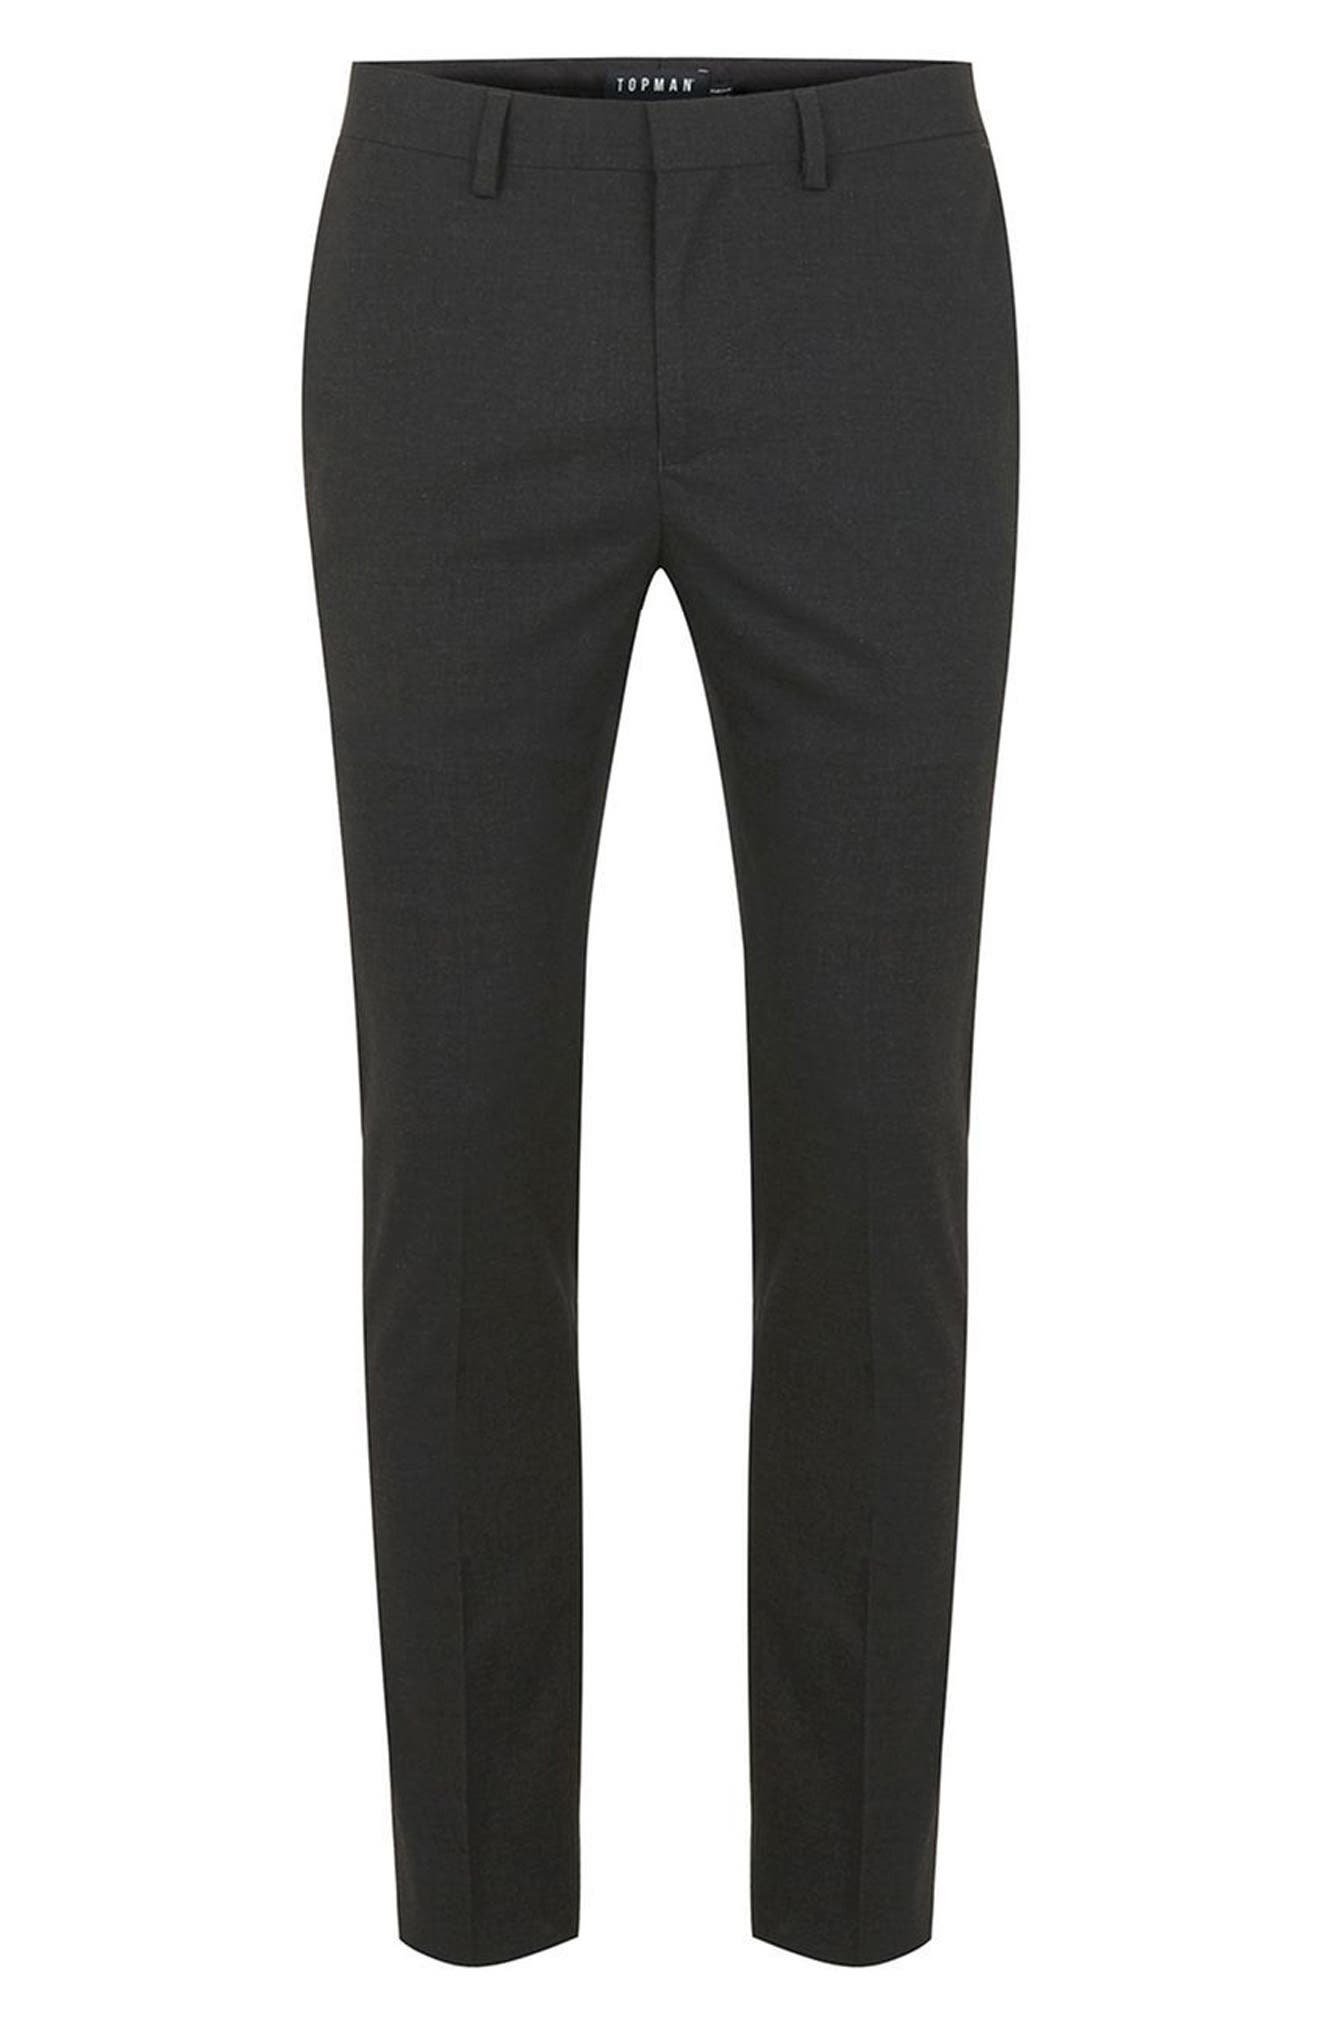 Ultra Skinny Fit Trousers,                             Alternate thumbnail 4, color,                             Charcoal